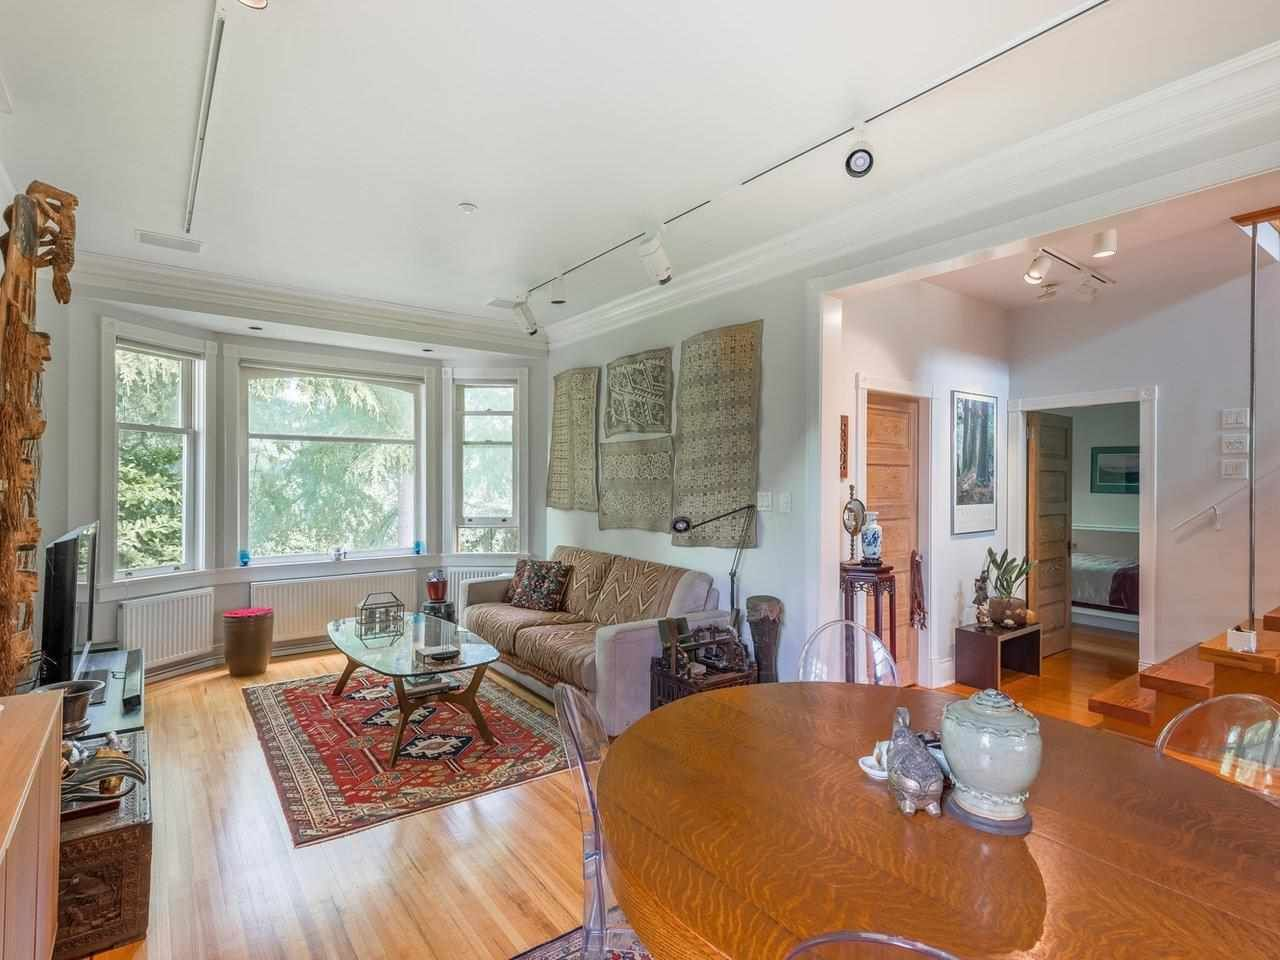 Photo 3: Photos: 2556 W 2ND Avenue in Vancouver: Kitsilano House for sale (Vancouver West)  : MLS®# R2593228